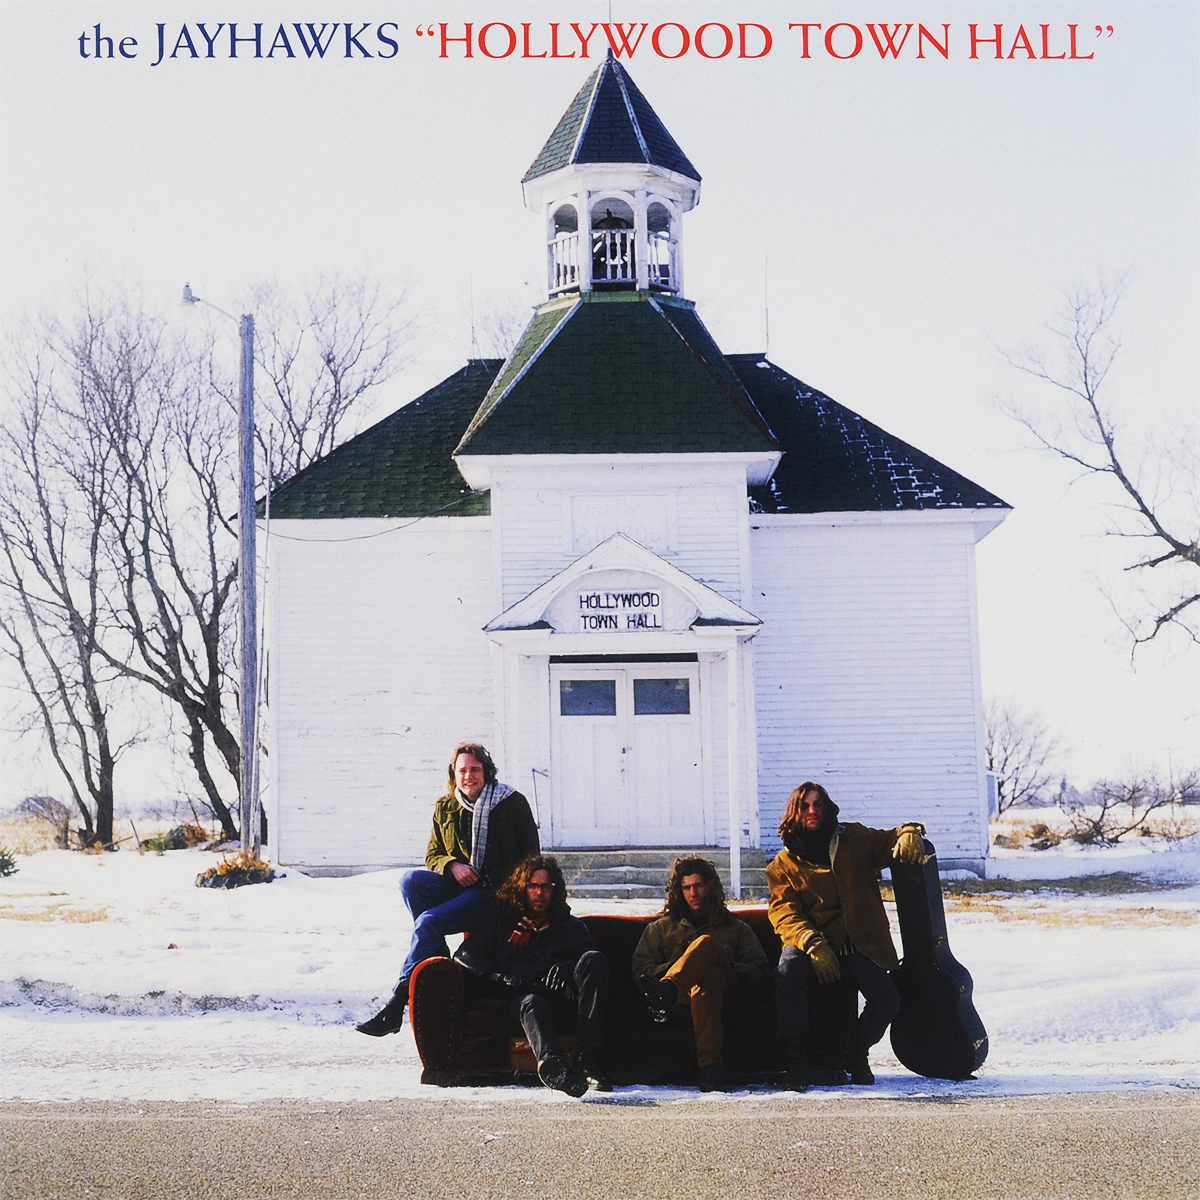 The Jayhawks The Jayhawks. Hollywood Town Hall (LP) zys48 s dh48s s ac 220v repeat cycle dpdt time delay relay timer counter with socket base 220vac